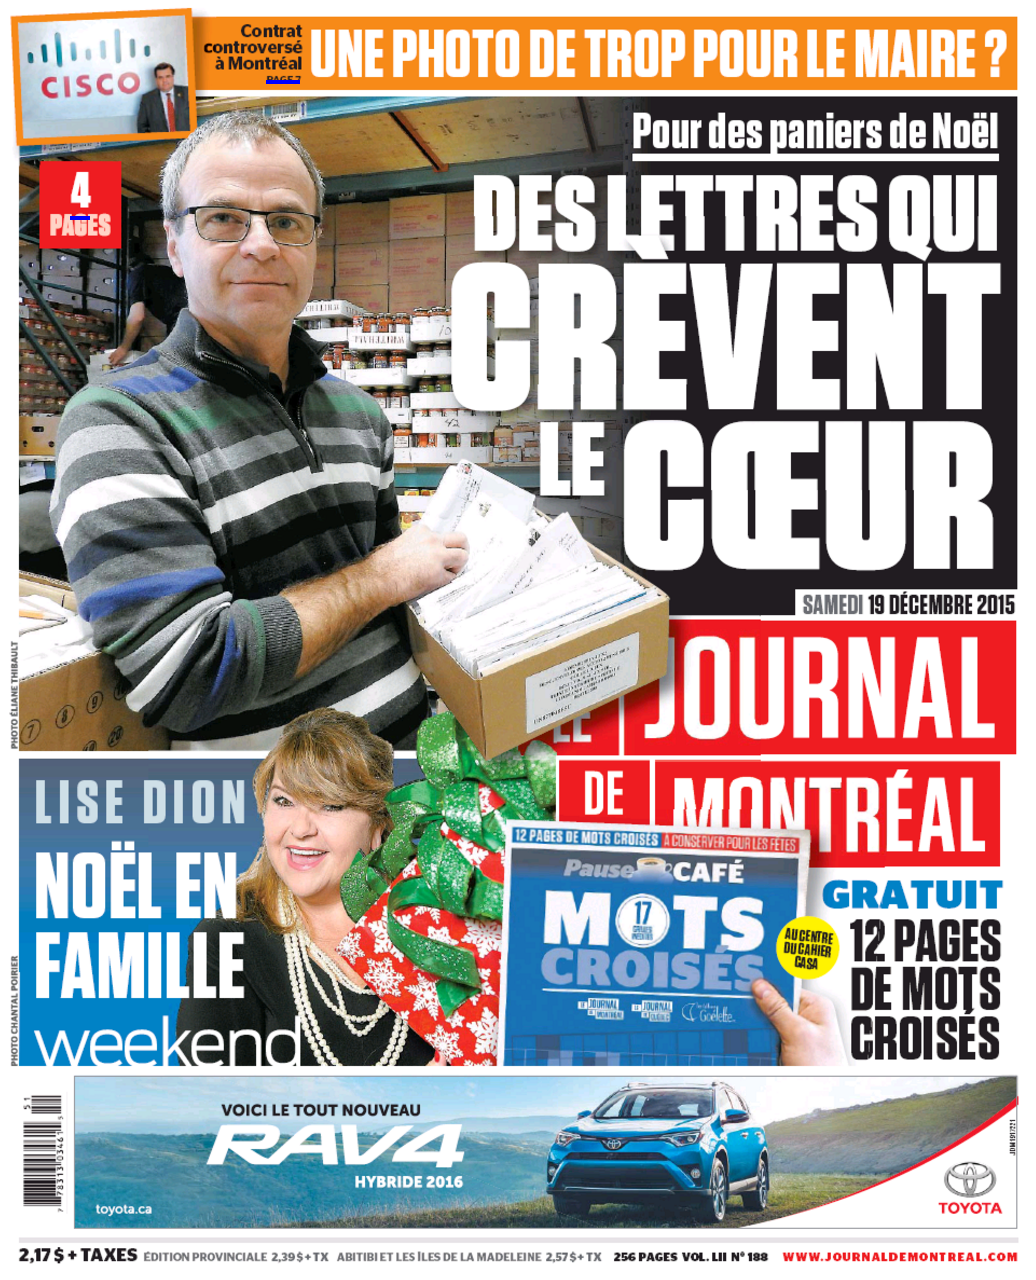 Journal_Montreal_19_Decembrie_2015